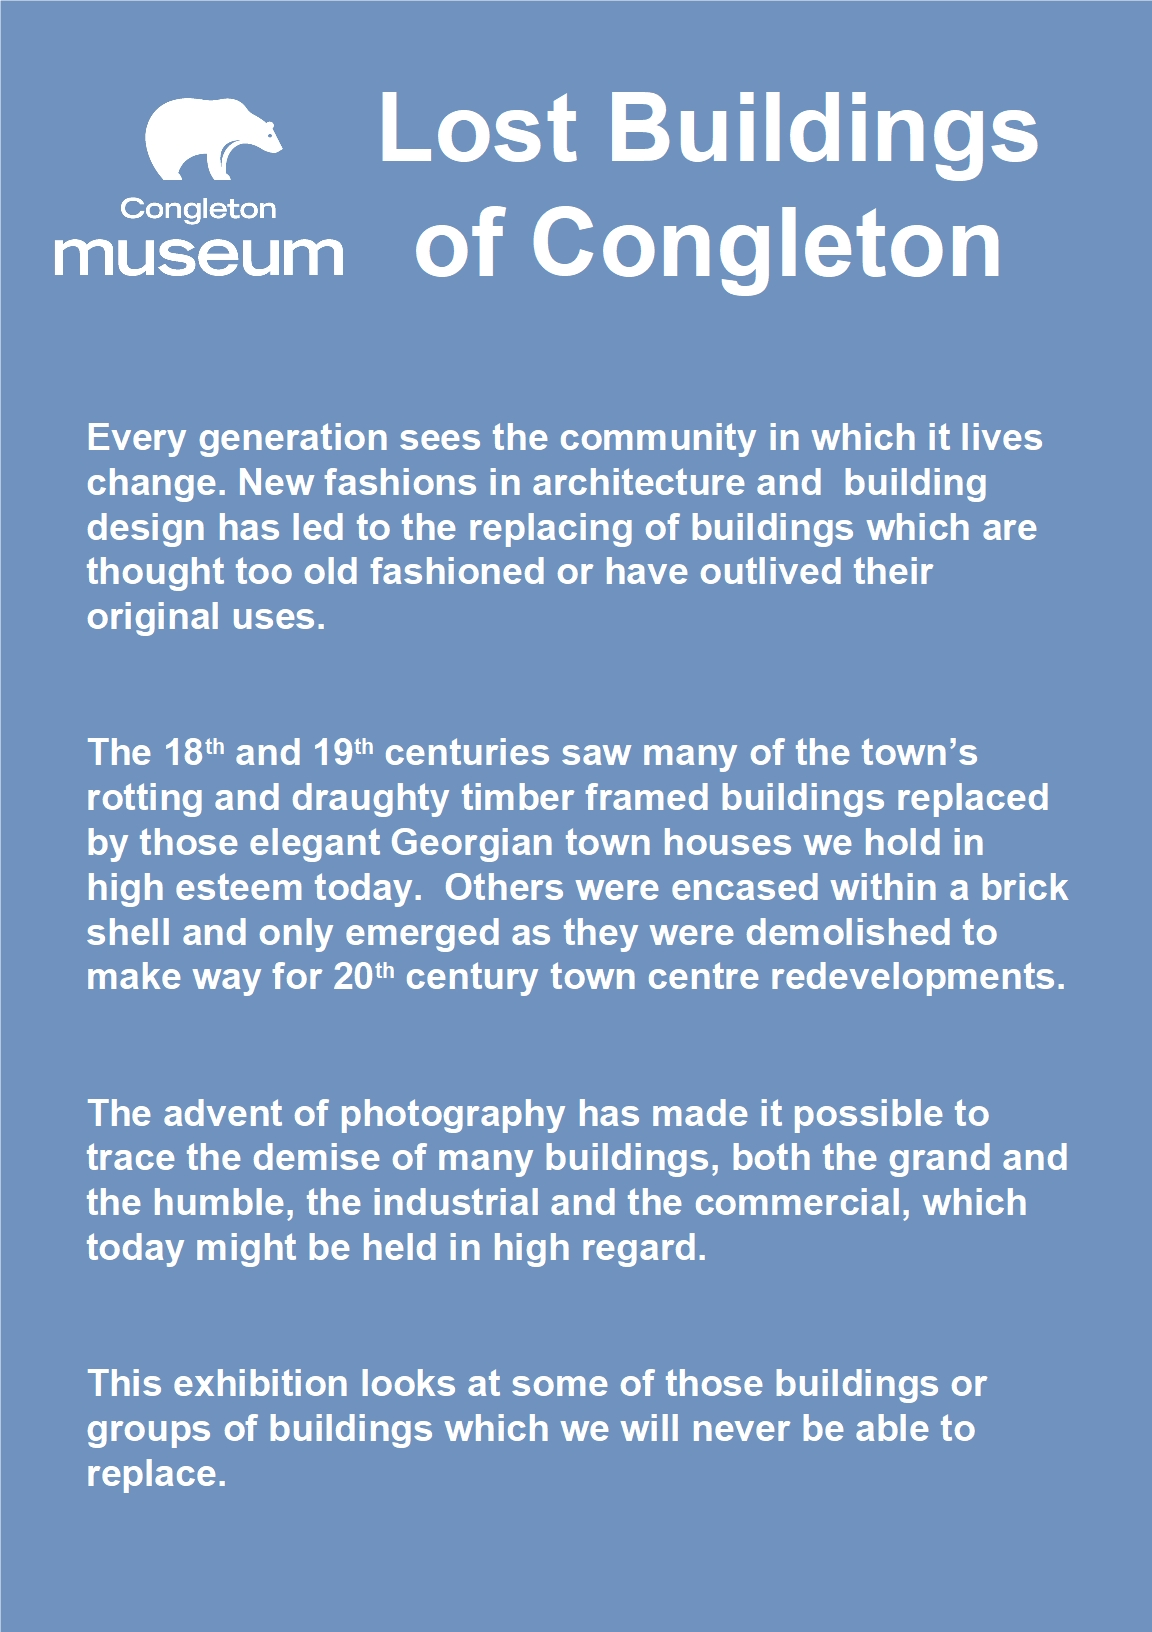 Lost Buildings of Congleton